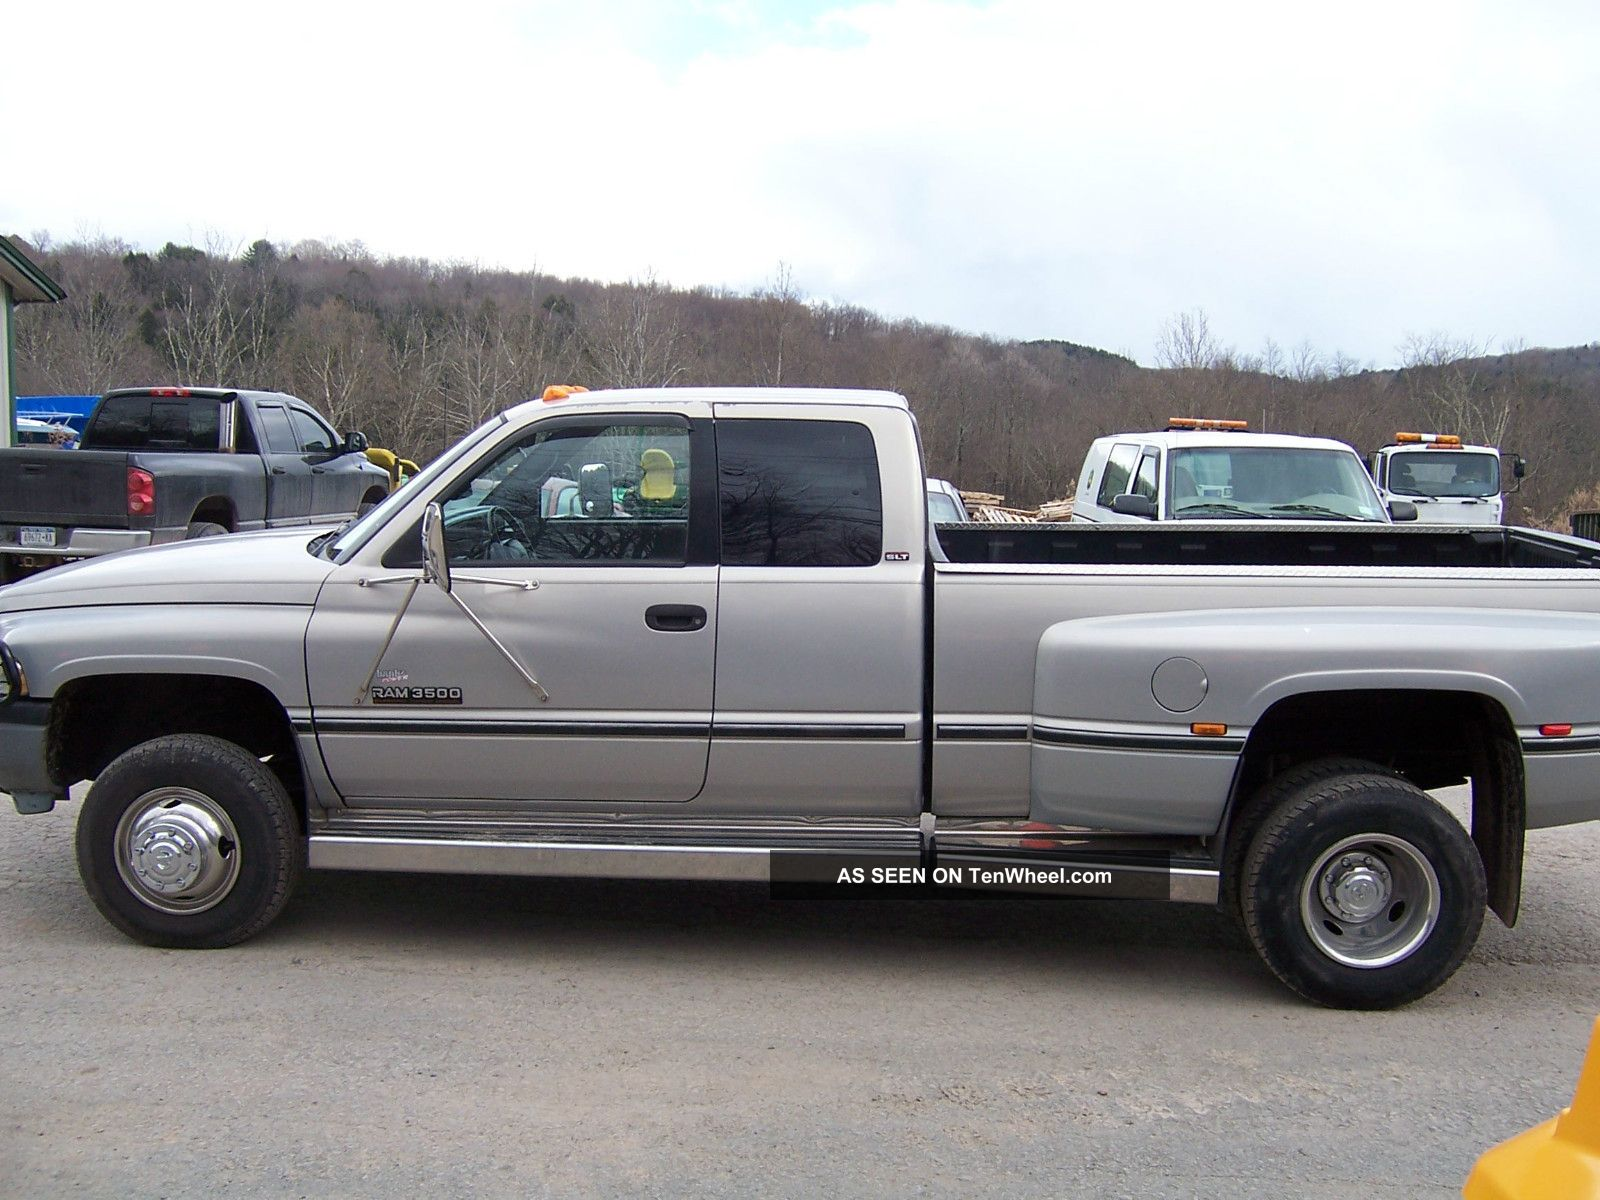 1997 dodge ram 3500 cummins diesel dually ram 3500 photo. Black Bedroom Furniture Sets. Home Design Ideas